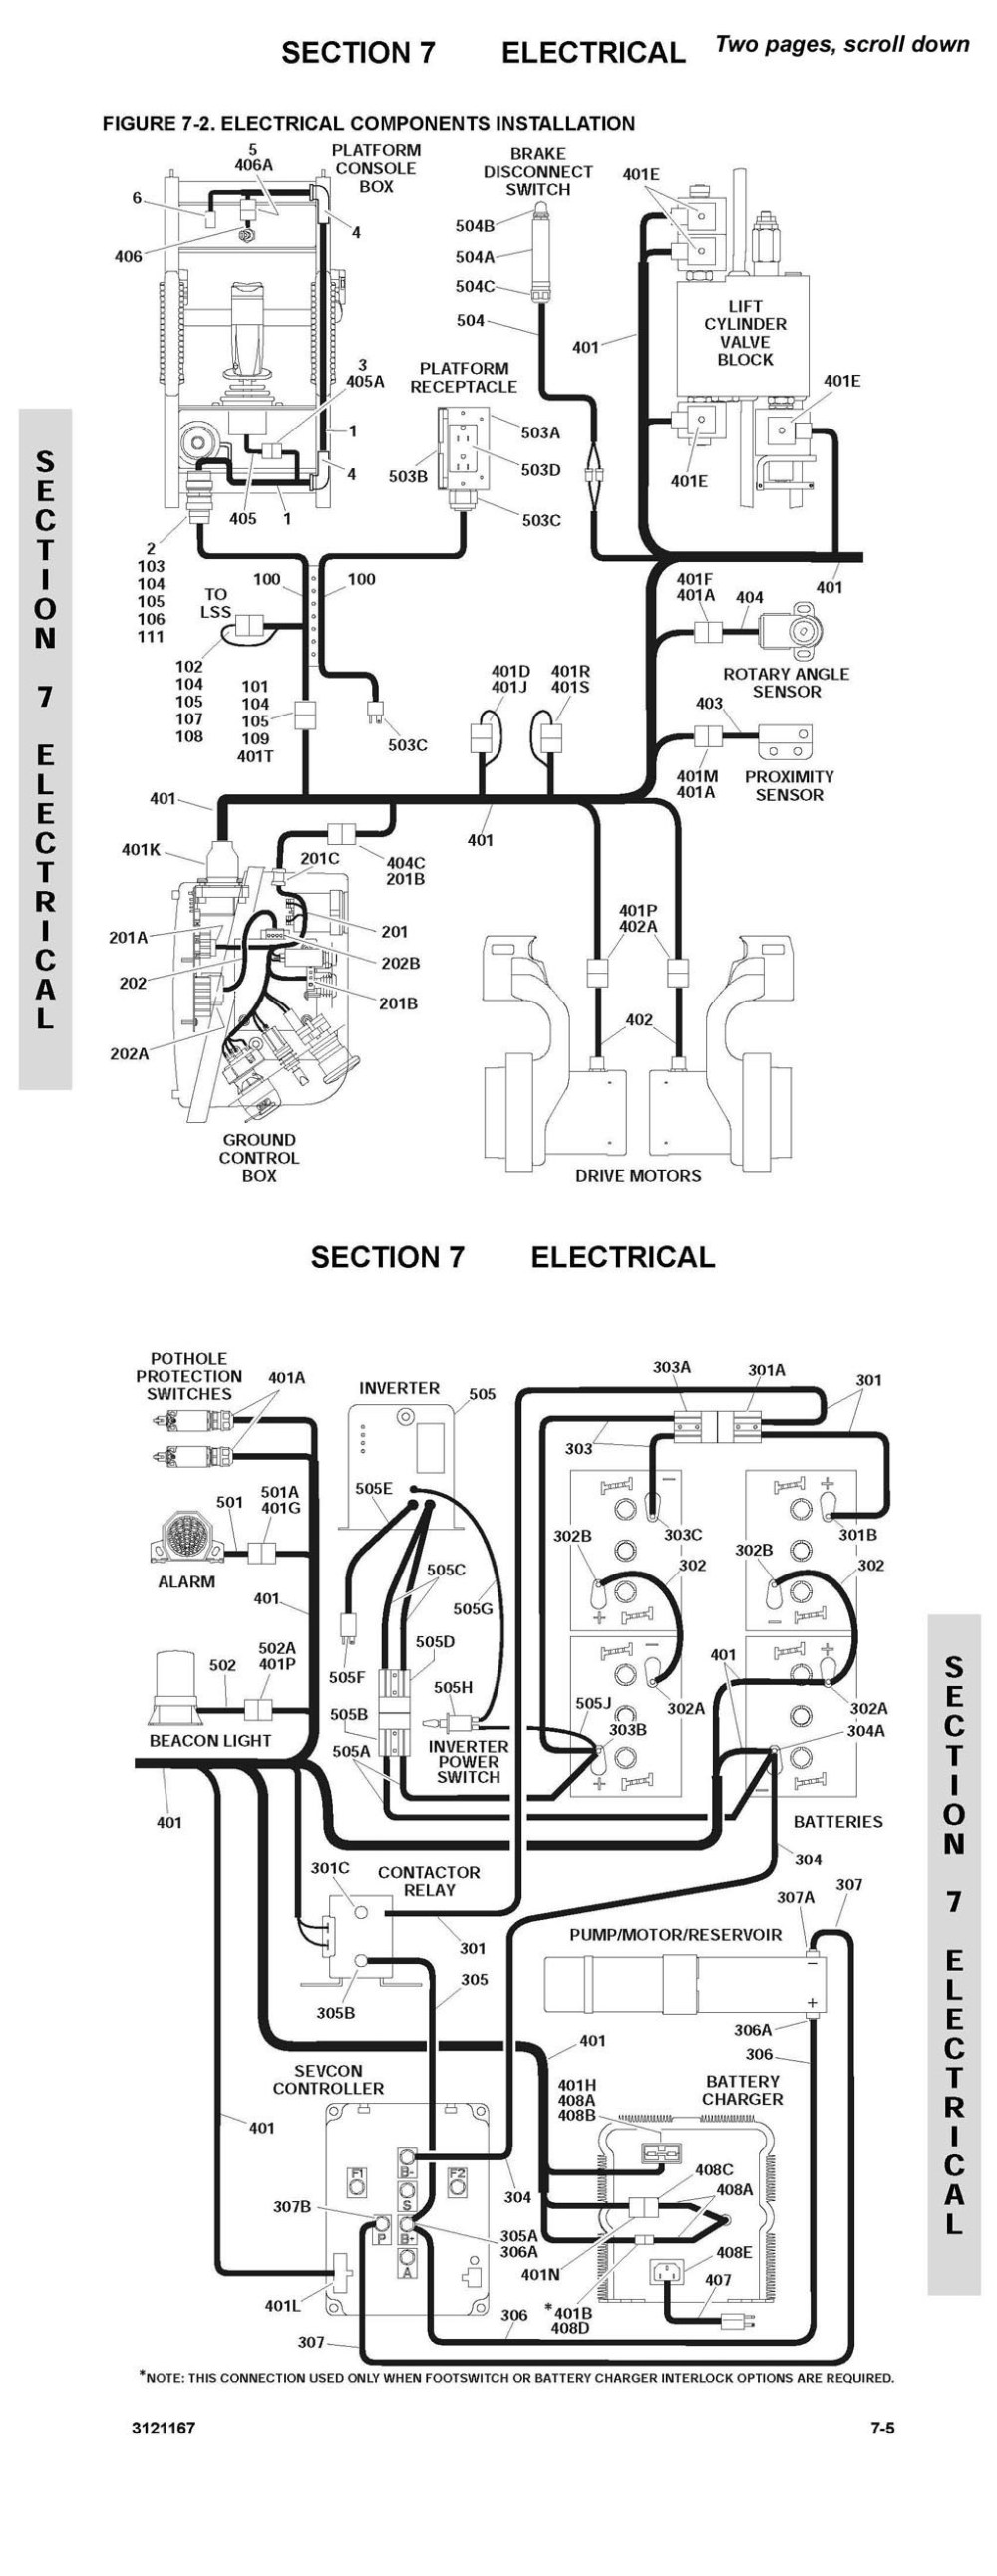 medium resolution of elevator wiring diagram pdf sampleelevator wiring diagram pdf elevator wiring diagram free collection upright scissor lift